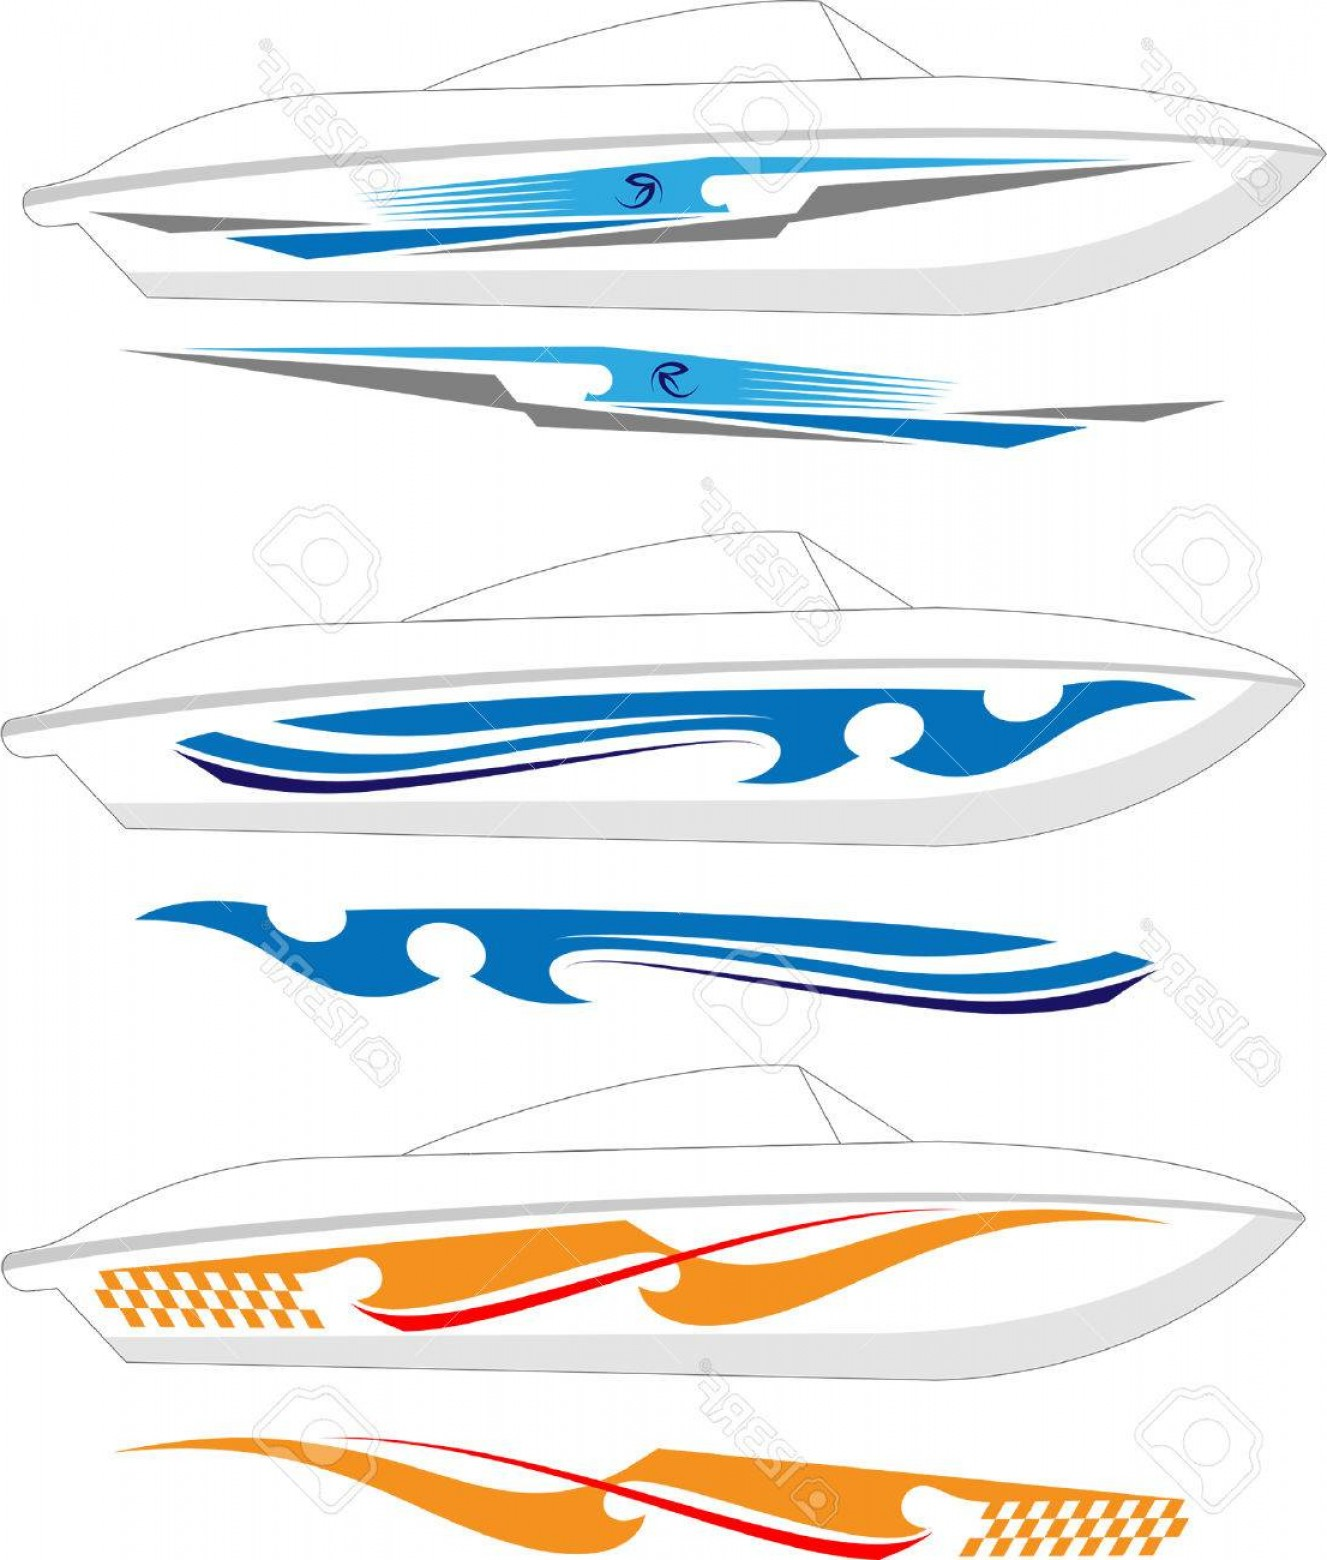 Boat Vector Art Graphics: Photostock Vector Boat Graphics Stripe Vinyl Ready Vector Art